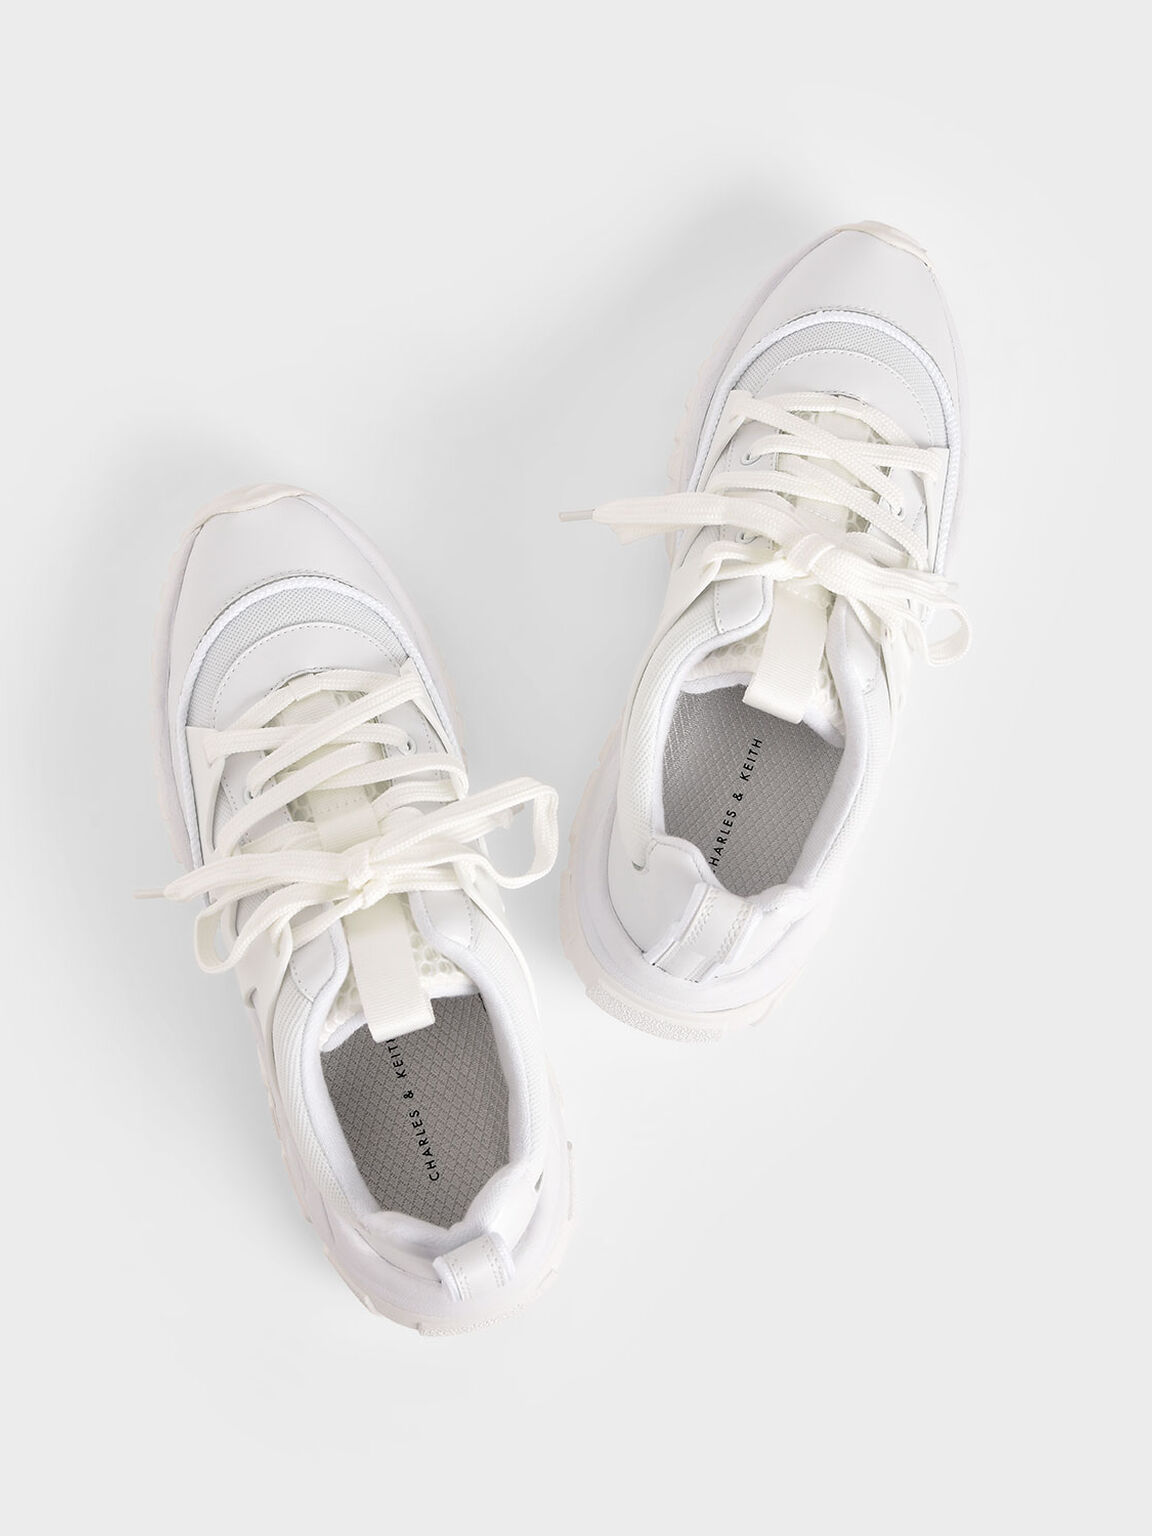 Mesh & Netting Chunky Sneakers, White, hi-res